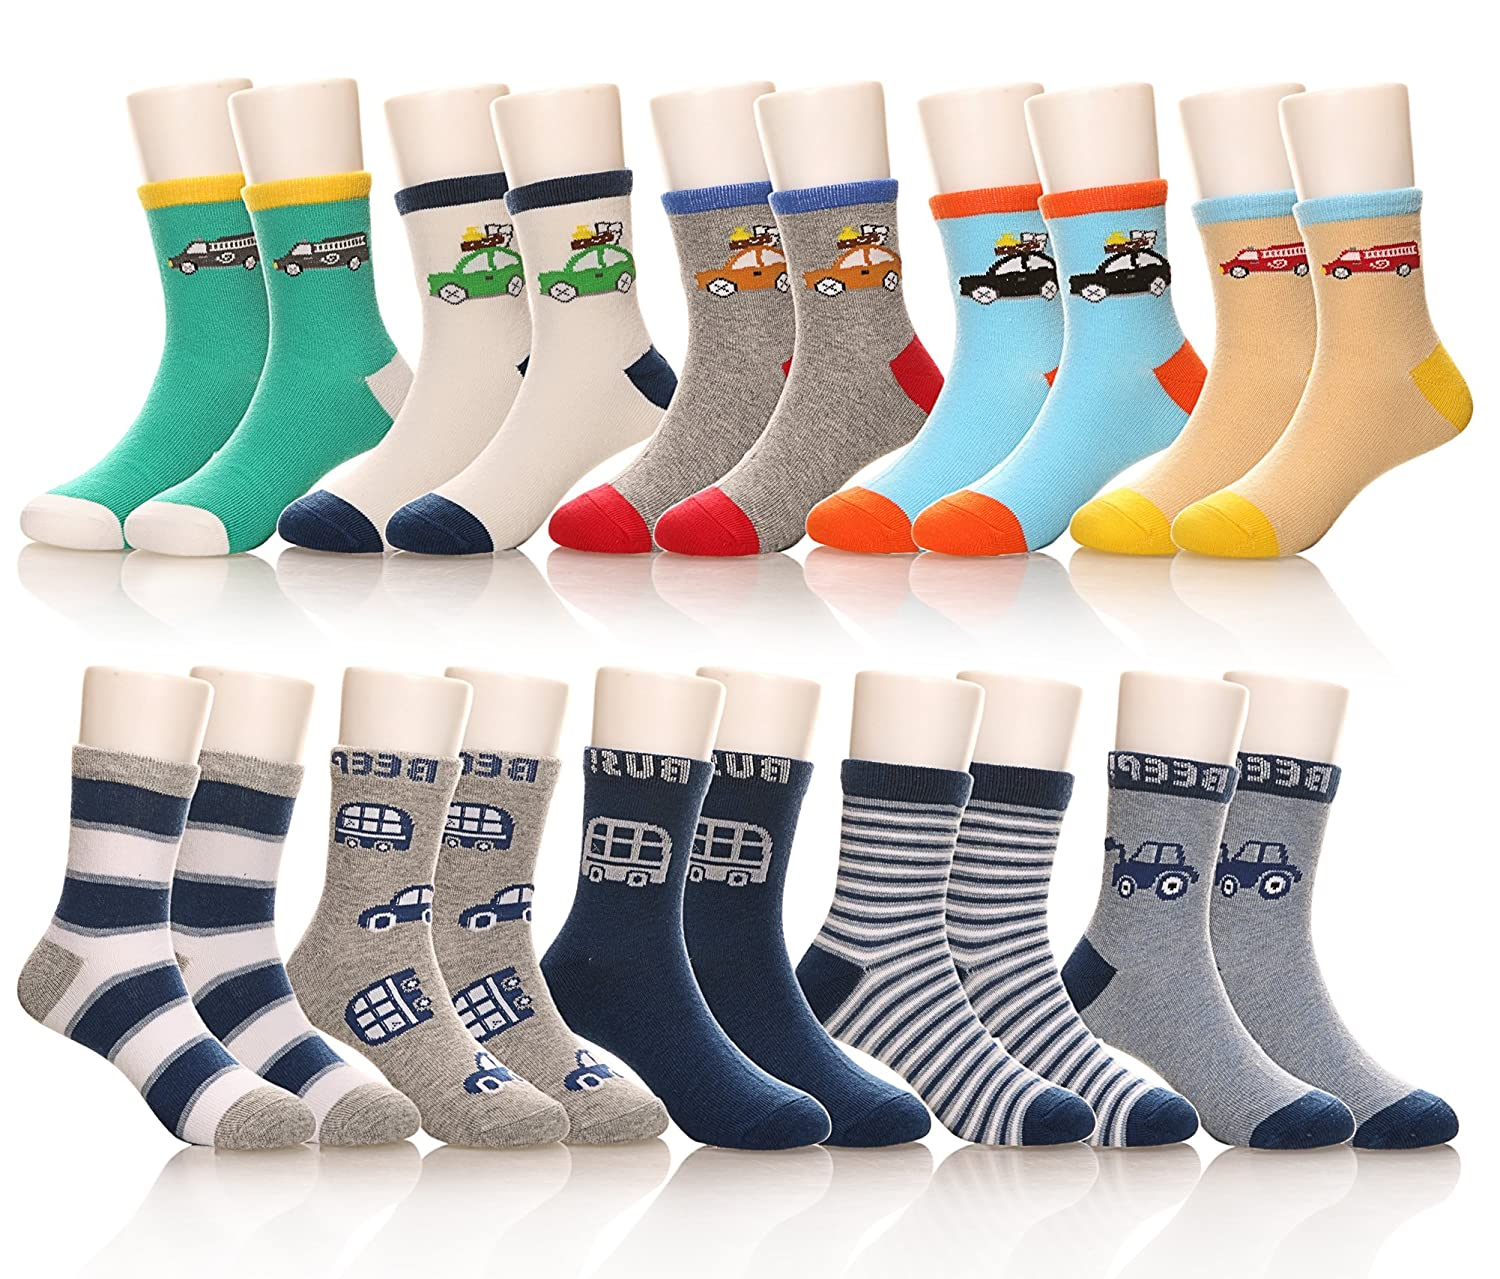 10 Pairs Kids Girls Boys Fashion Soft Cute Breathable Cotton Crew Socks